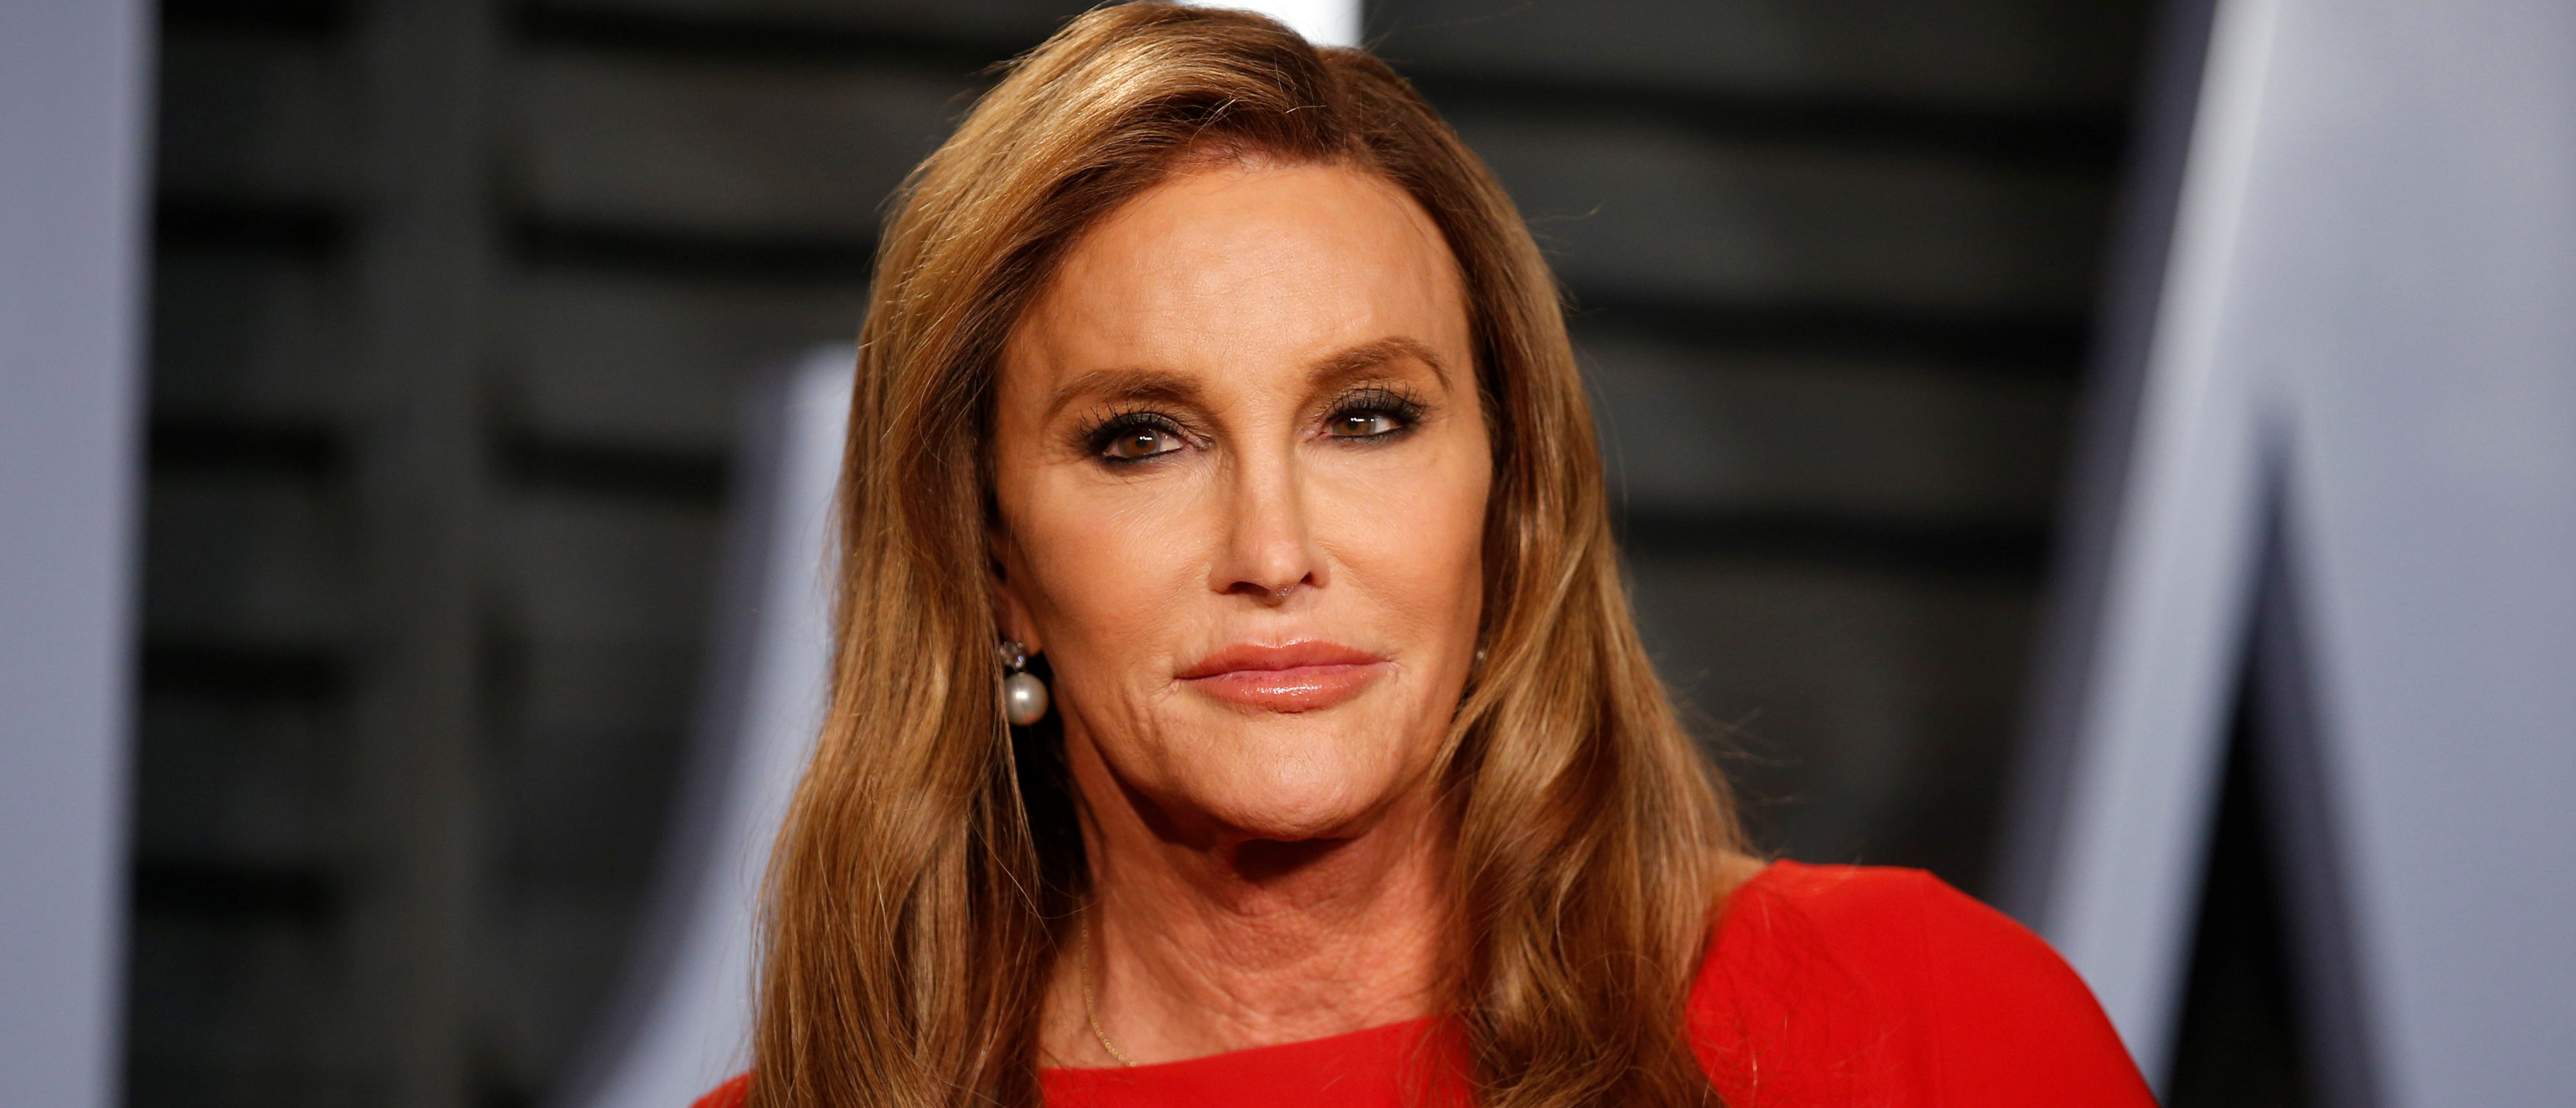 <p>Calling All Patriots: Would You Support Caitlyn Jenner's Bid In California Governor Race? </p> thumbnail